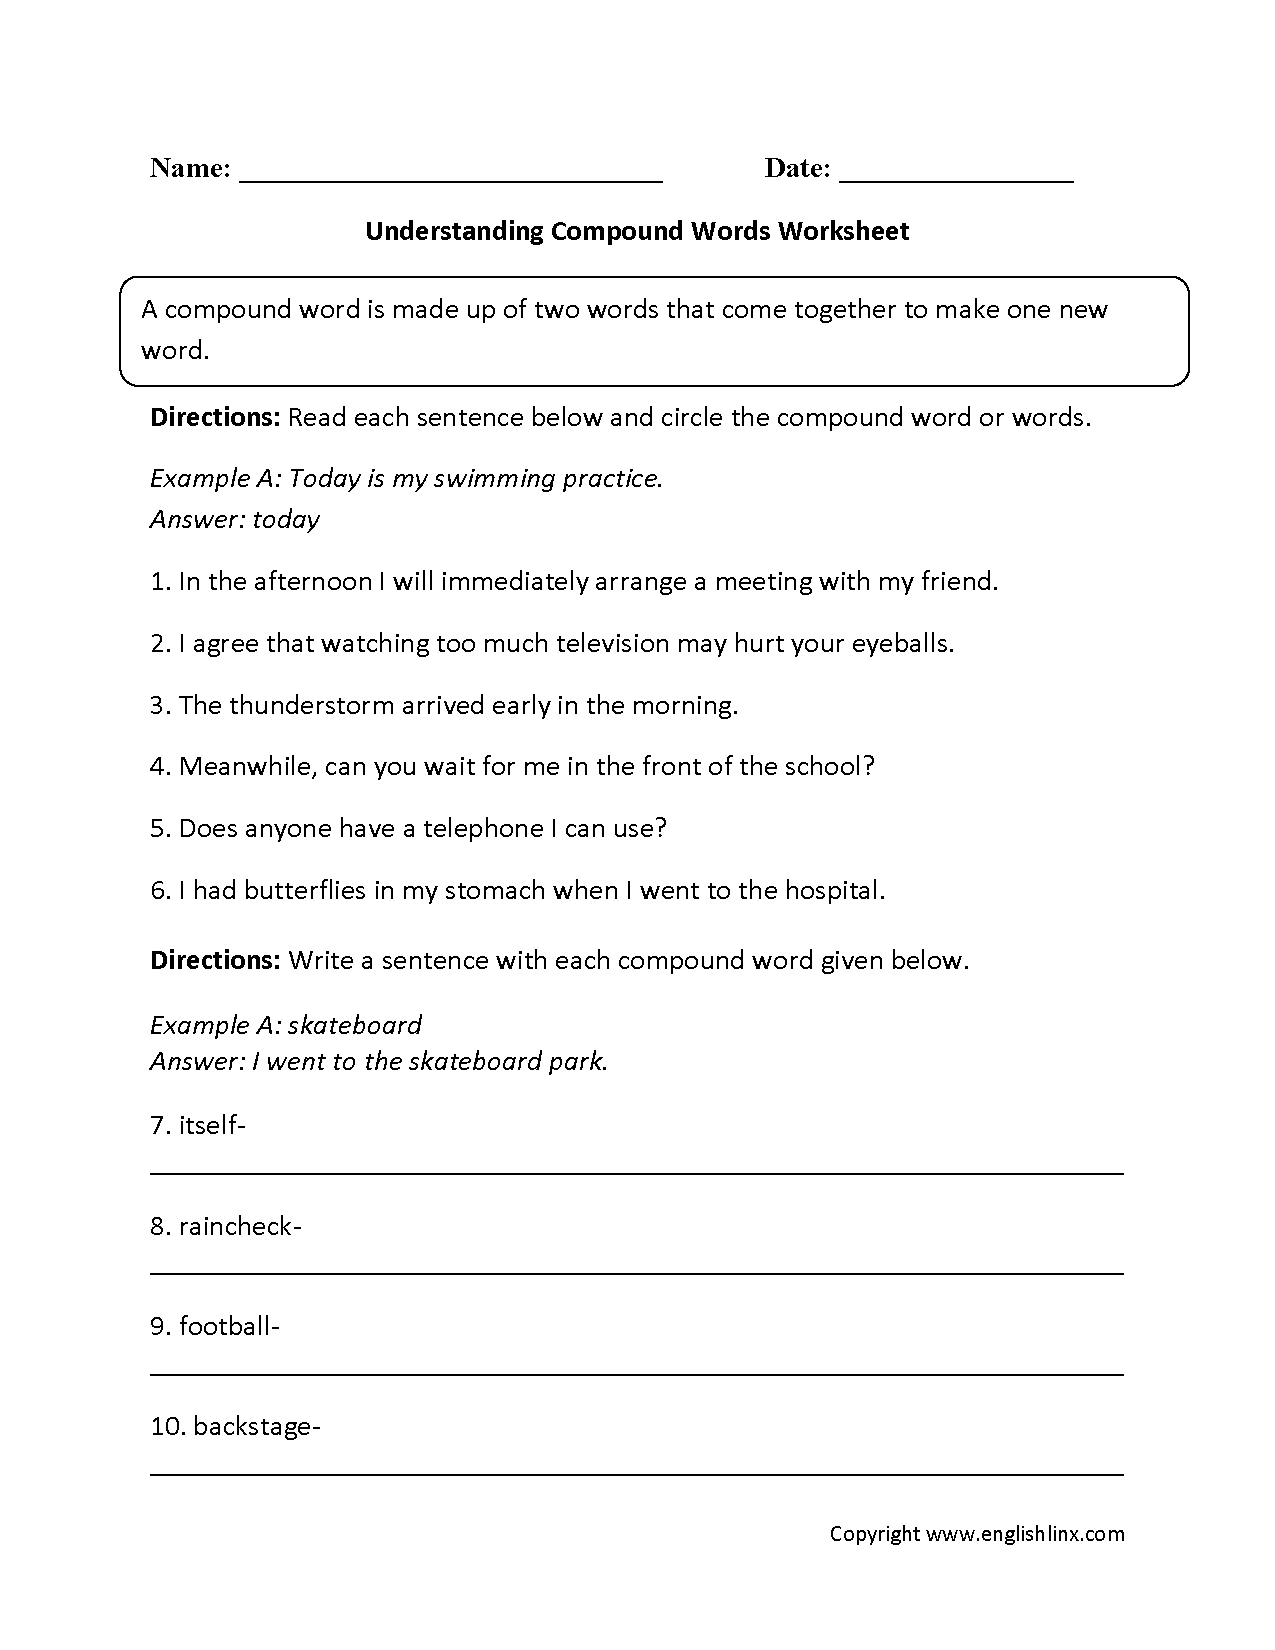 Hyphenated Compound Words Worksheets – Naming Binary Compounds Worksheet